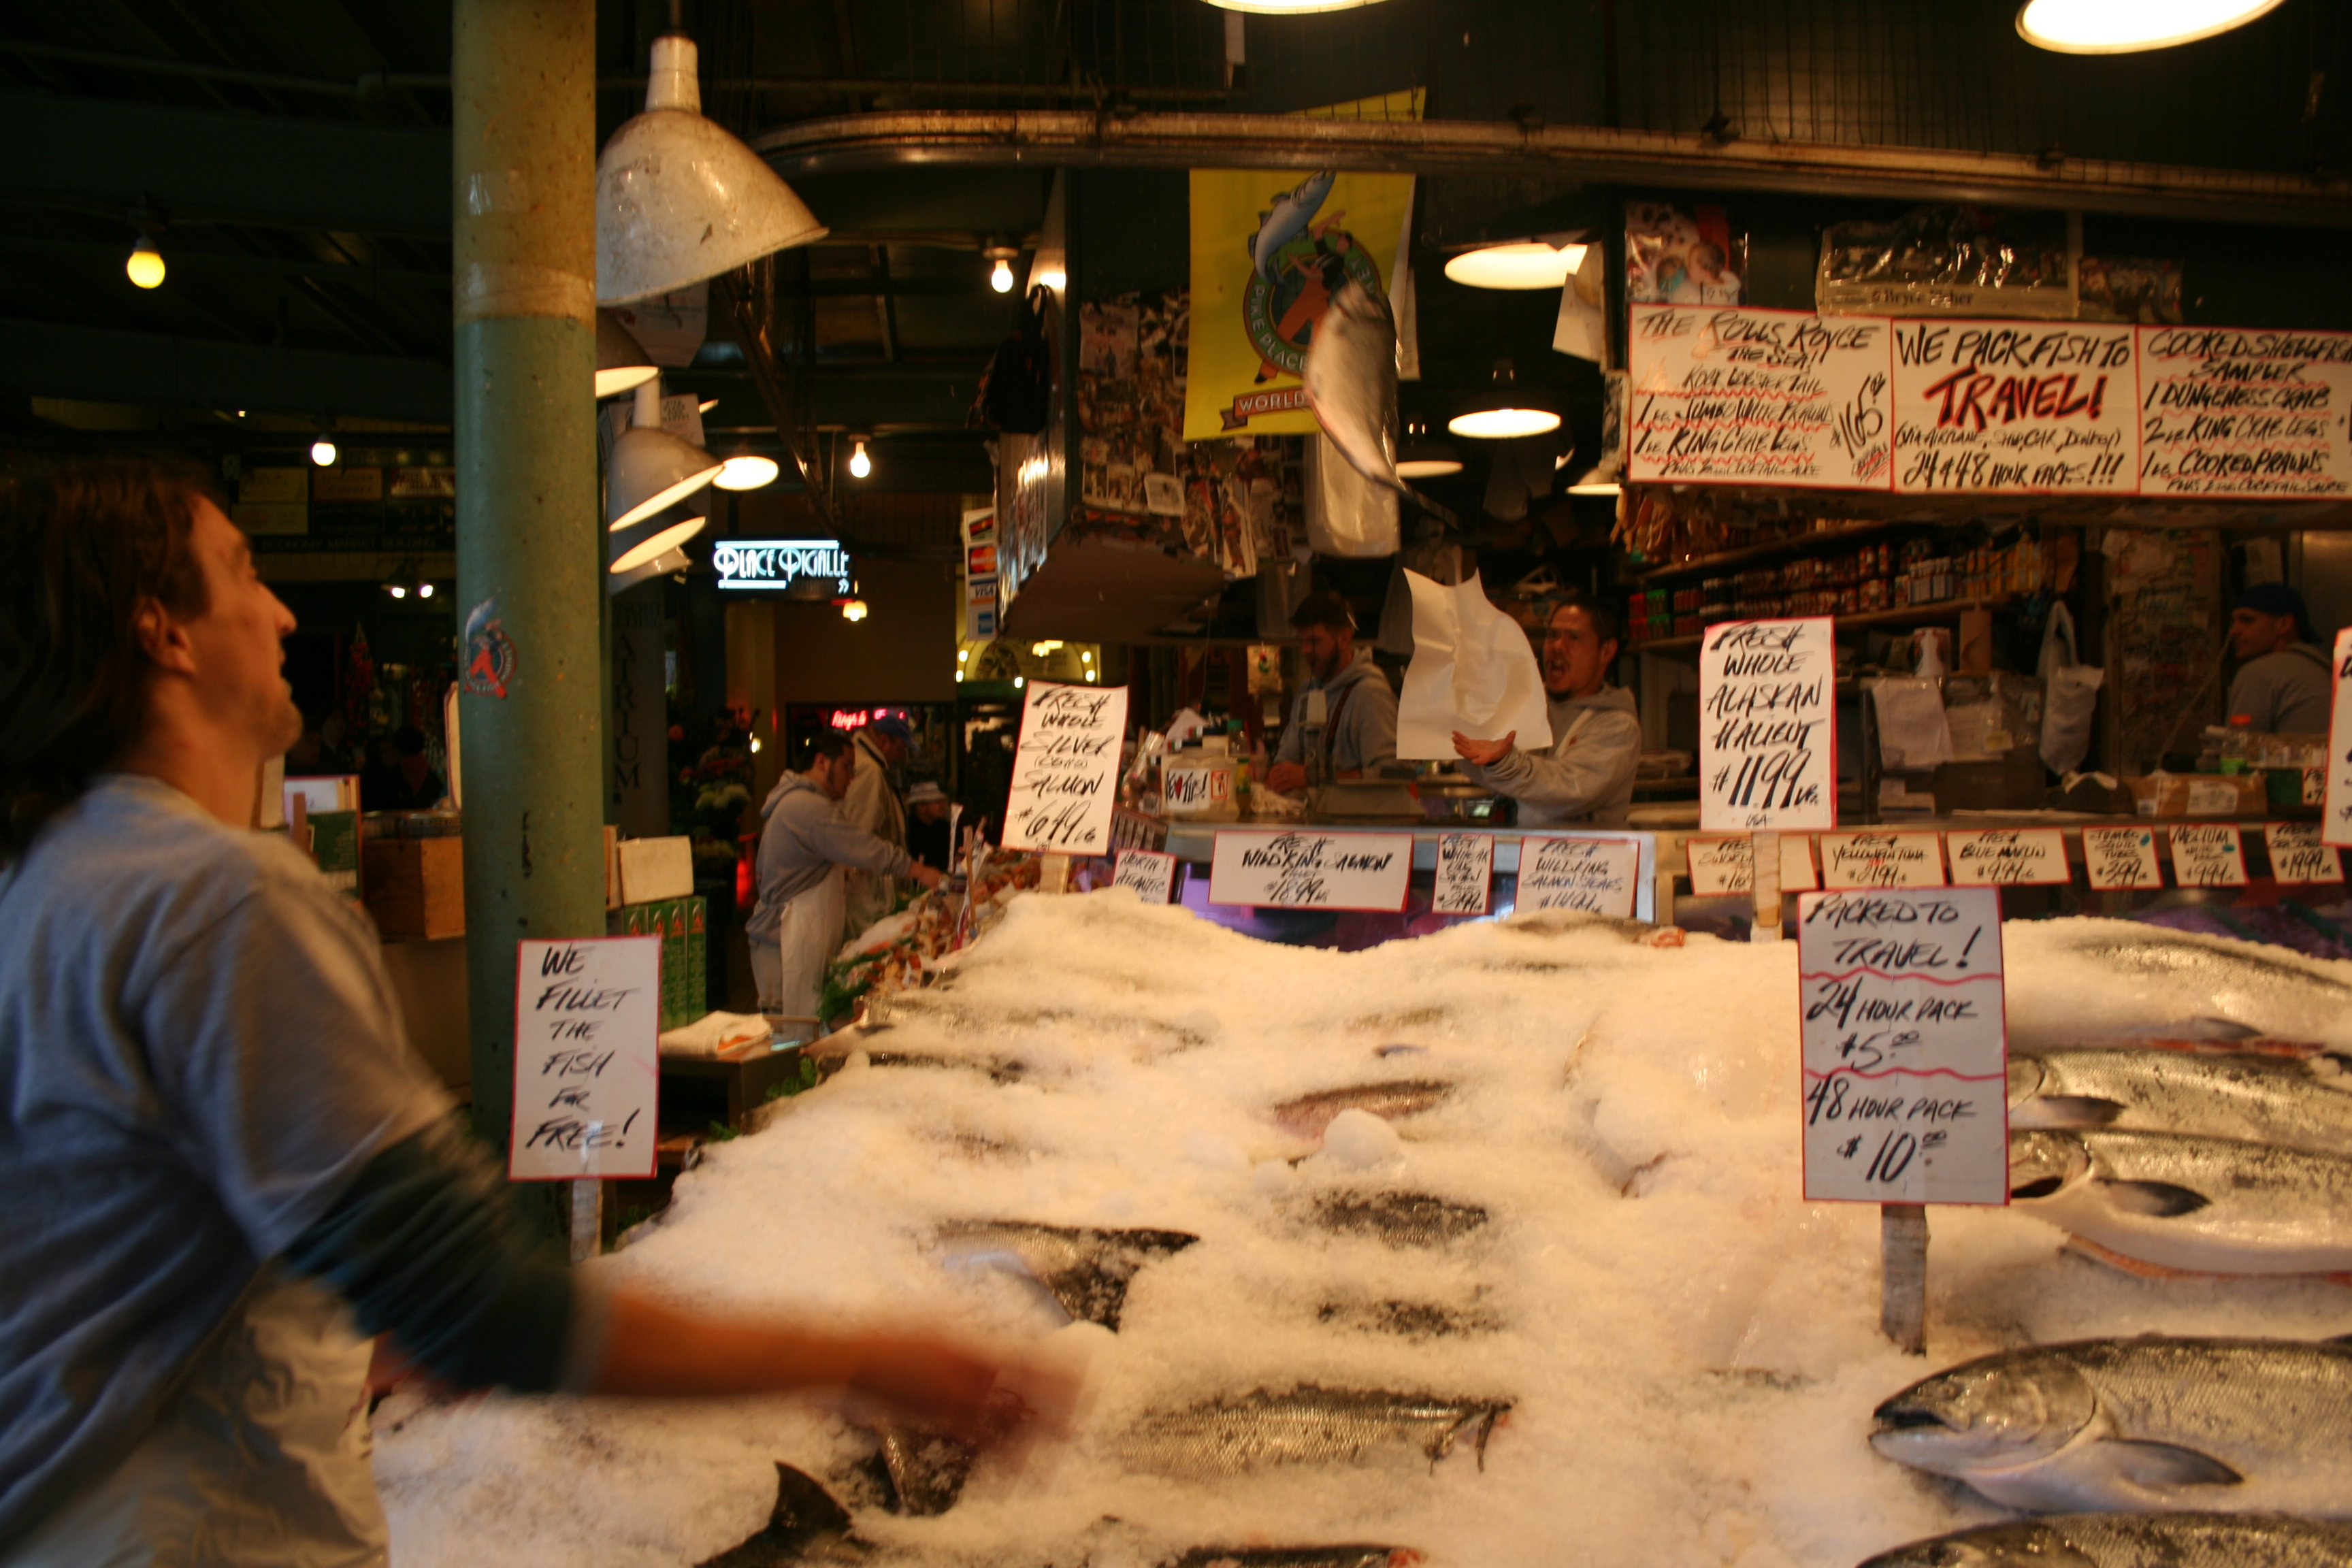 Pike place fish market wiki everipedia for Pike place fish